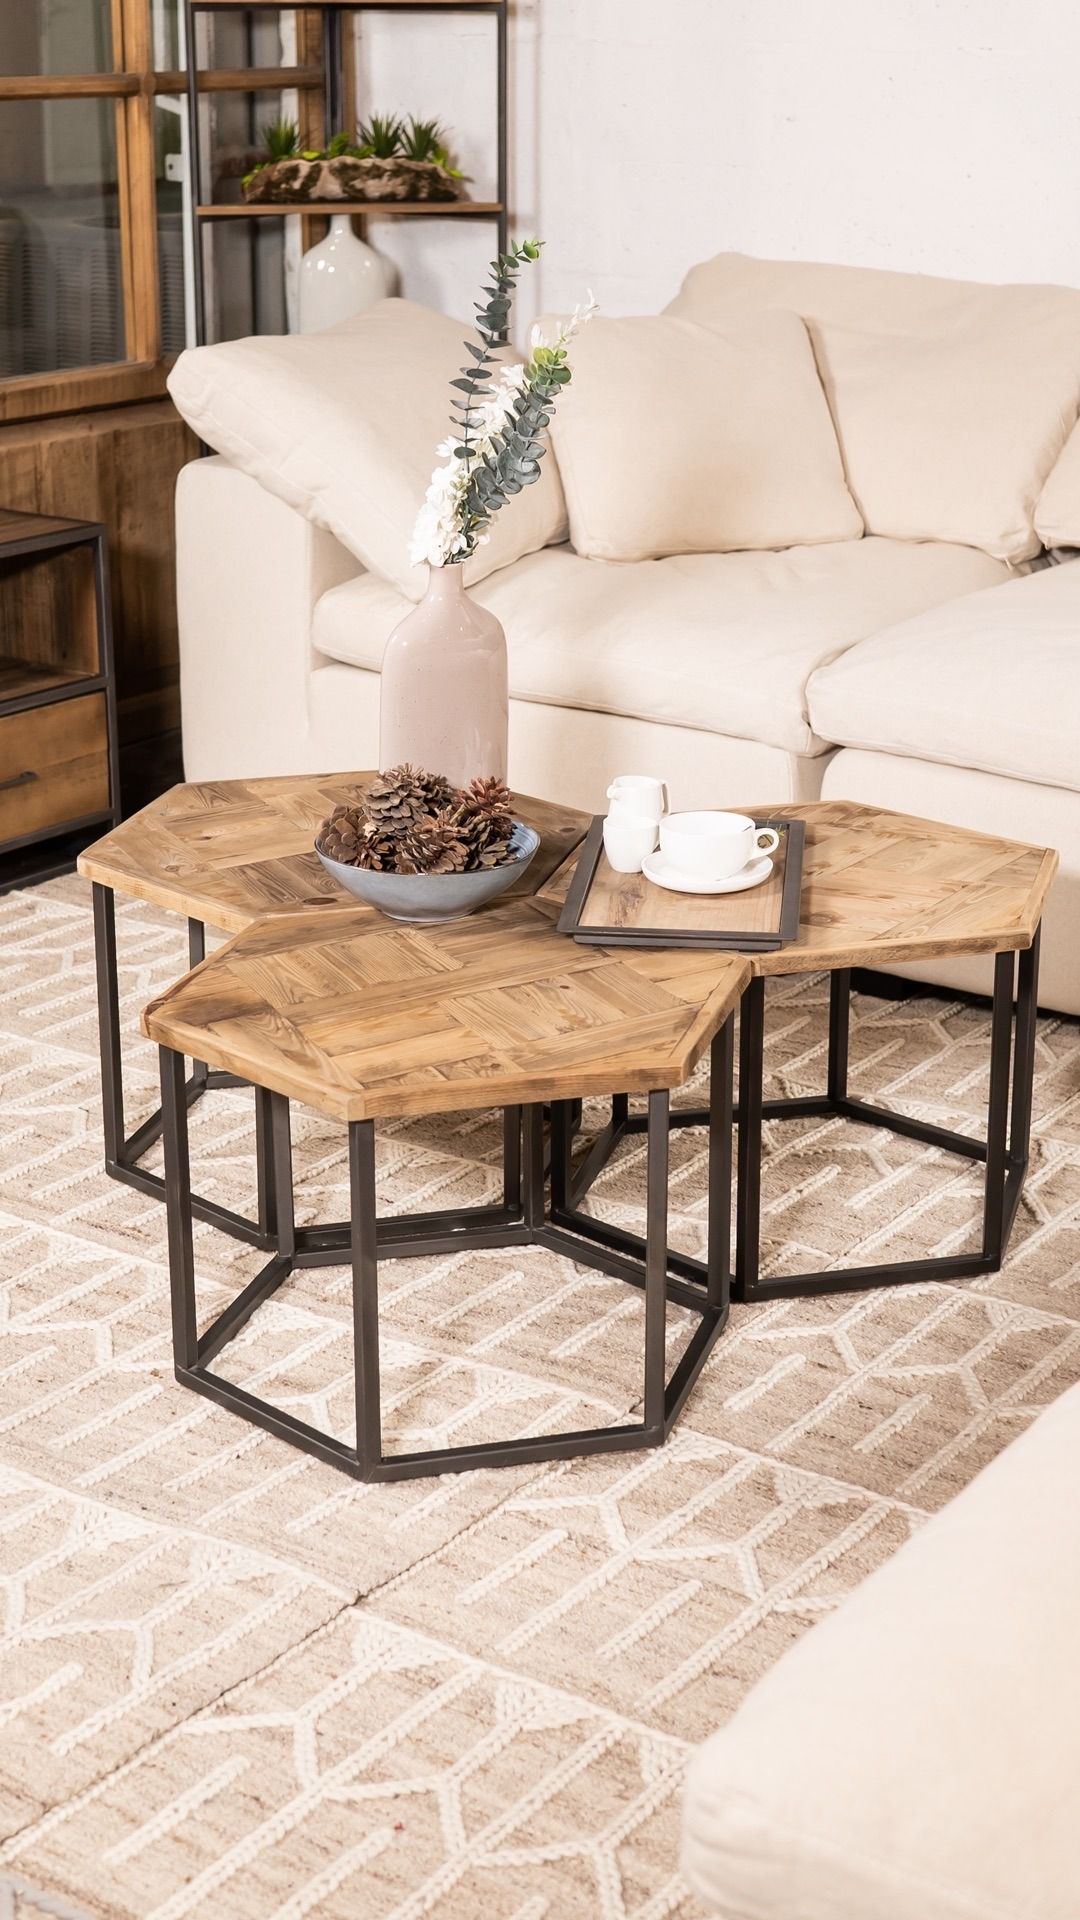 Hexagon Coffee Set Centre Table Living Room Coffee Table Small Apartment Interior [ 1920 x 1080 Pixel ]